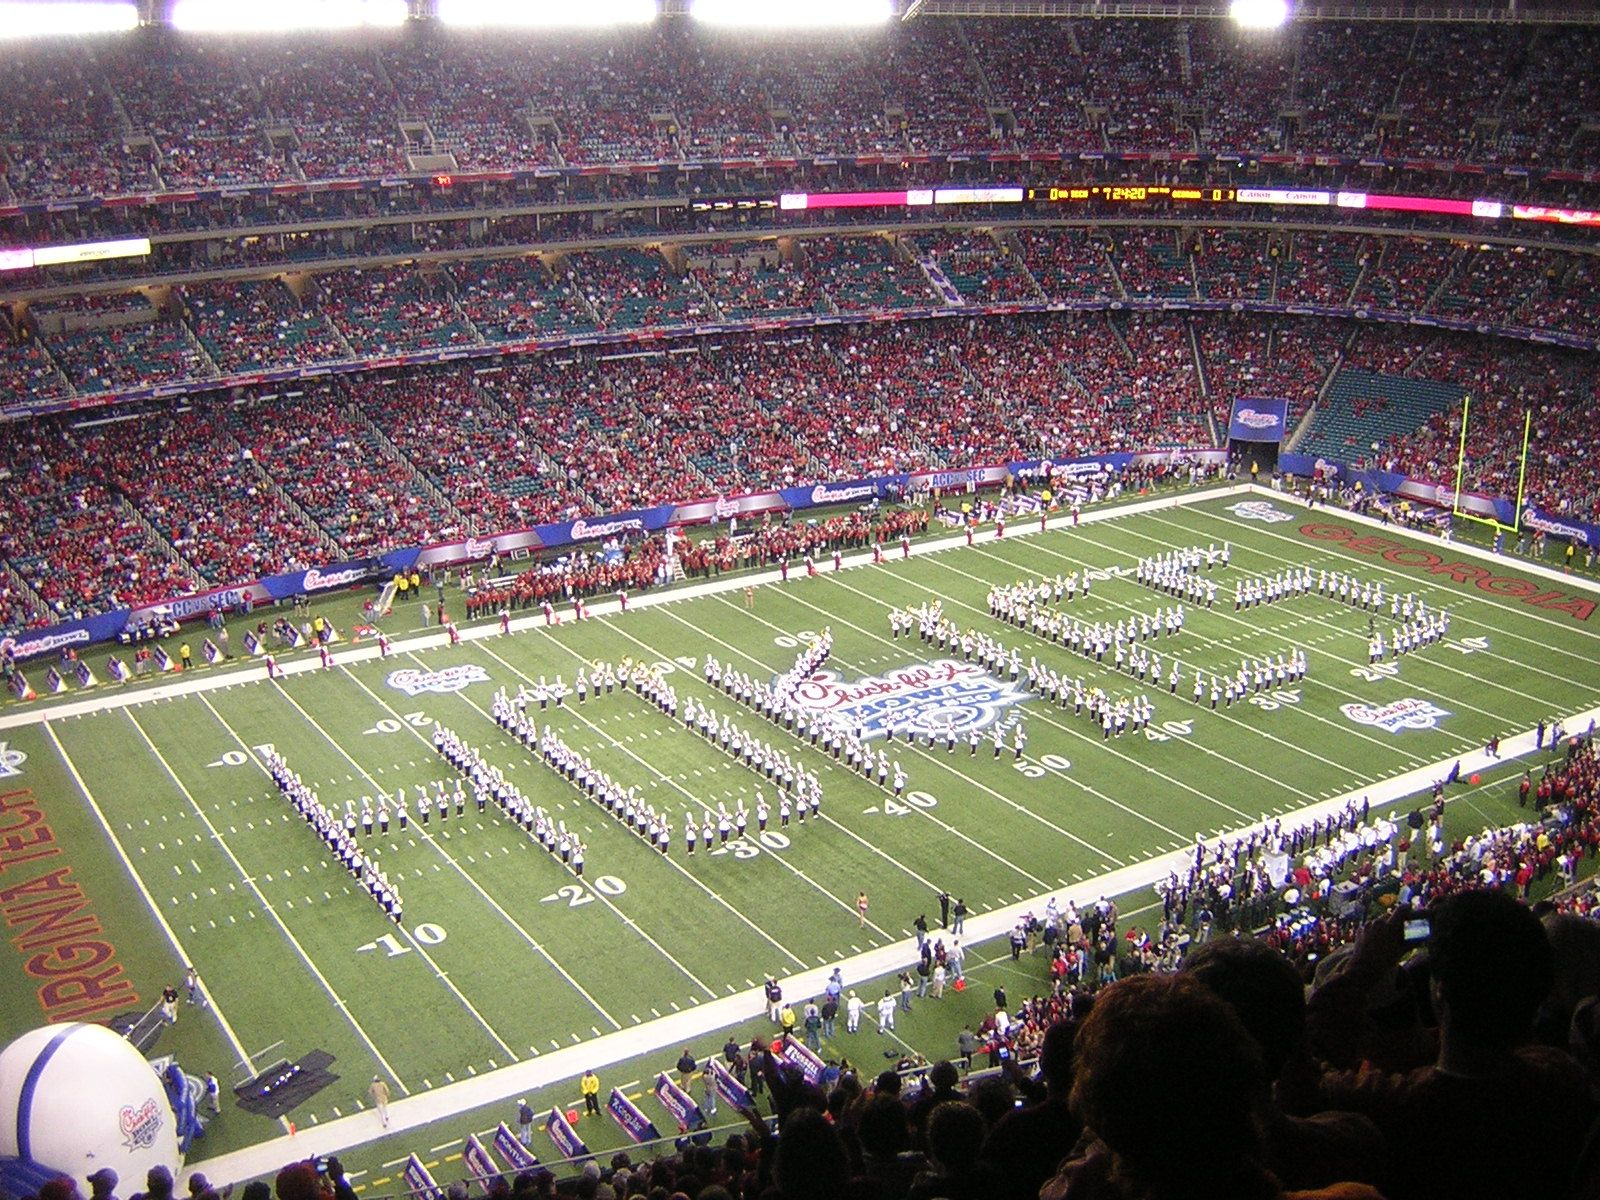 I Never Knew The 4 Years I Went To Games That The Marching